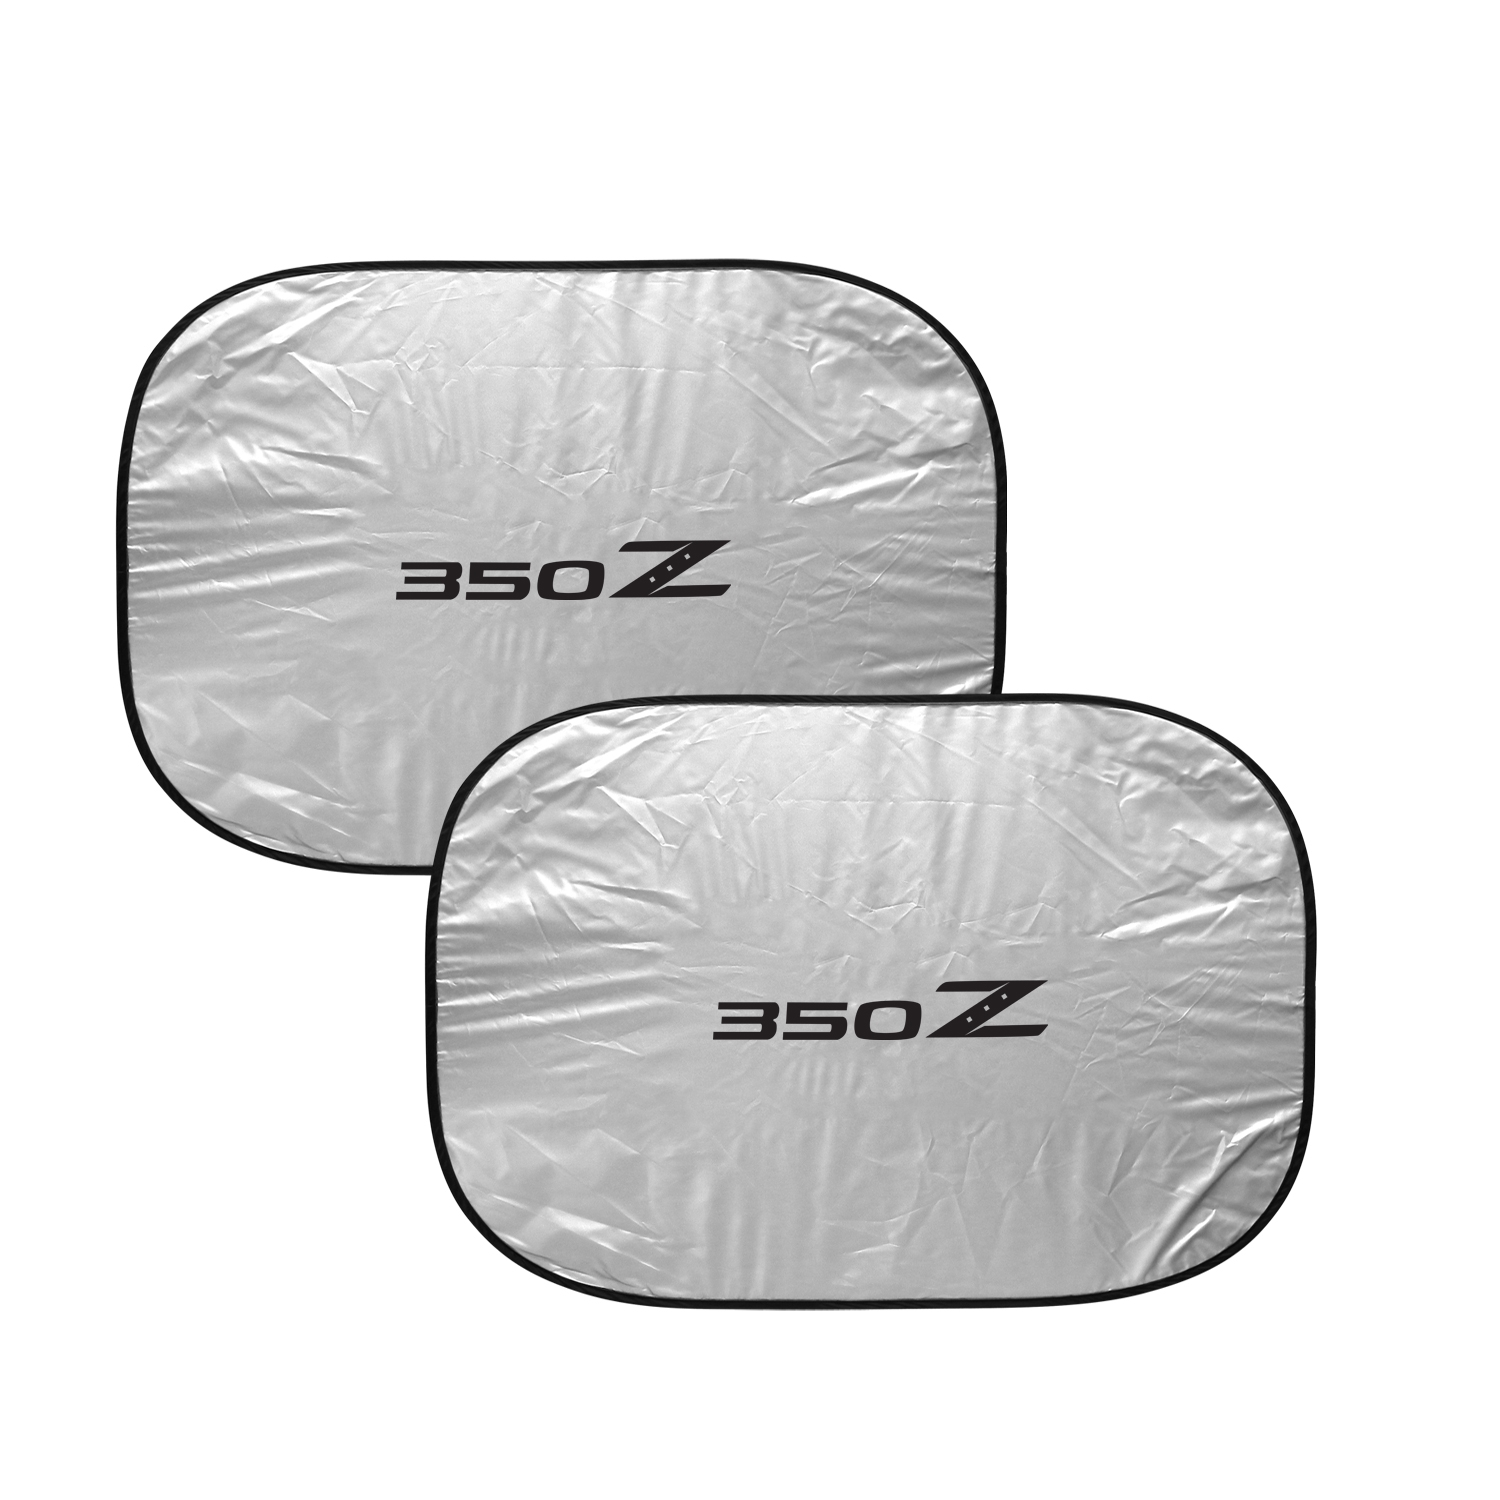 Nissan 350Z Dual Panels Easy Folding Windshield Sun Shade for Cars and Small SUVs